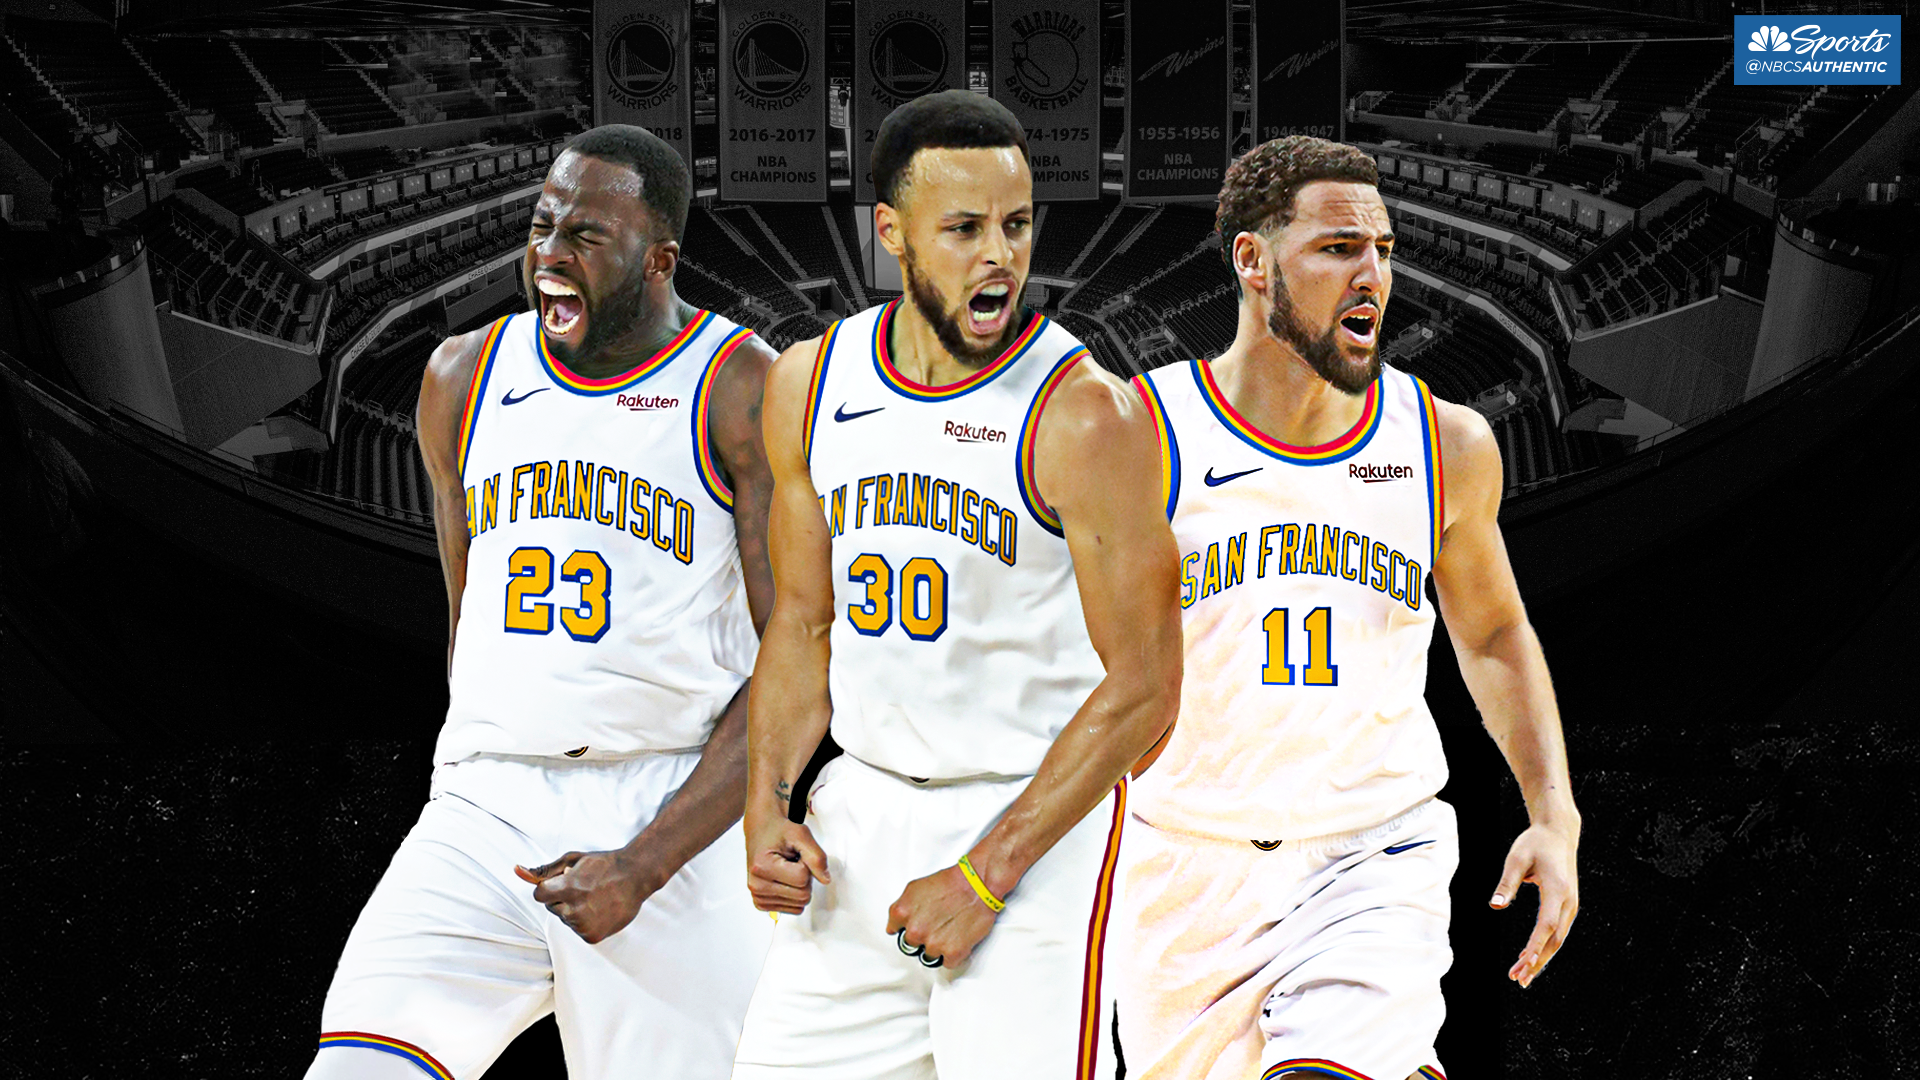 promo code 6702e 4bf98 Warriors reveal six jersey designs ahead of first Chase ...